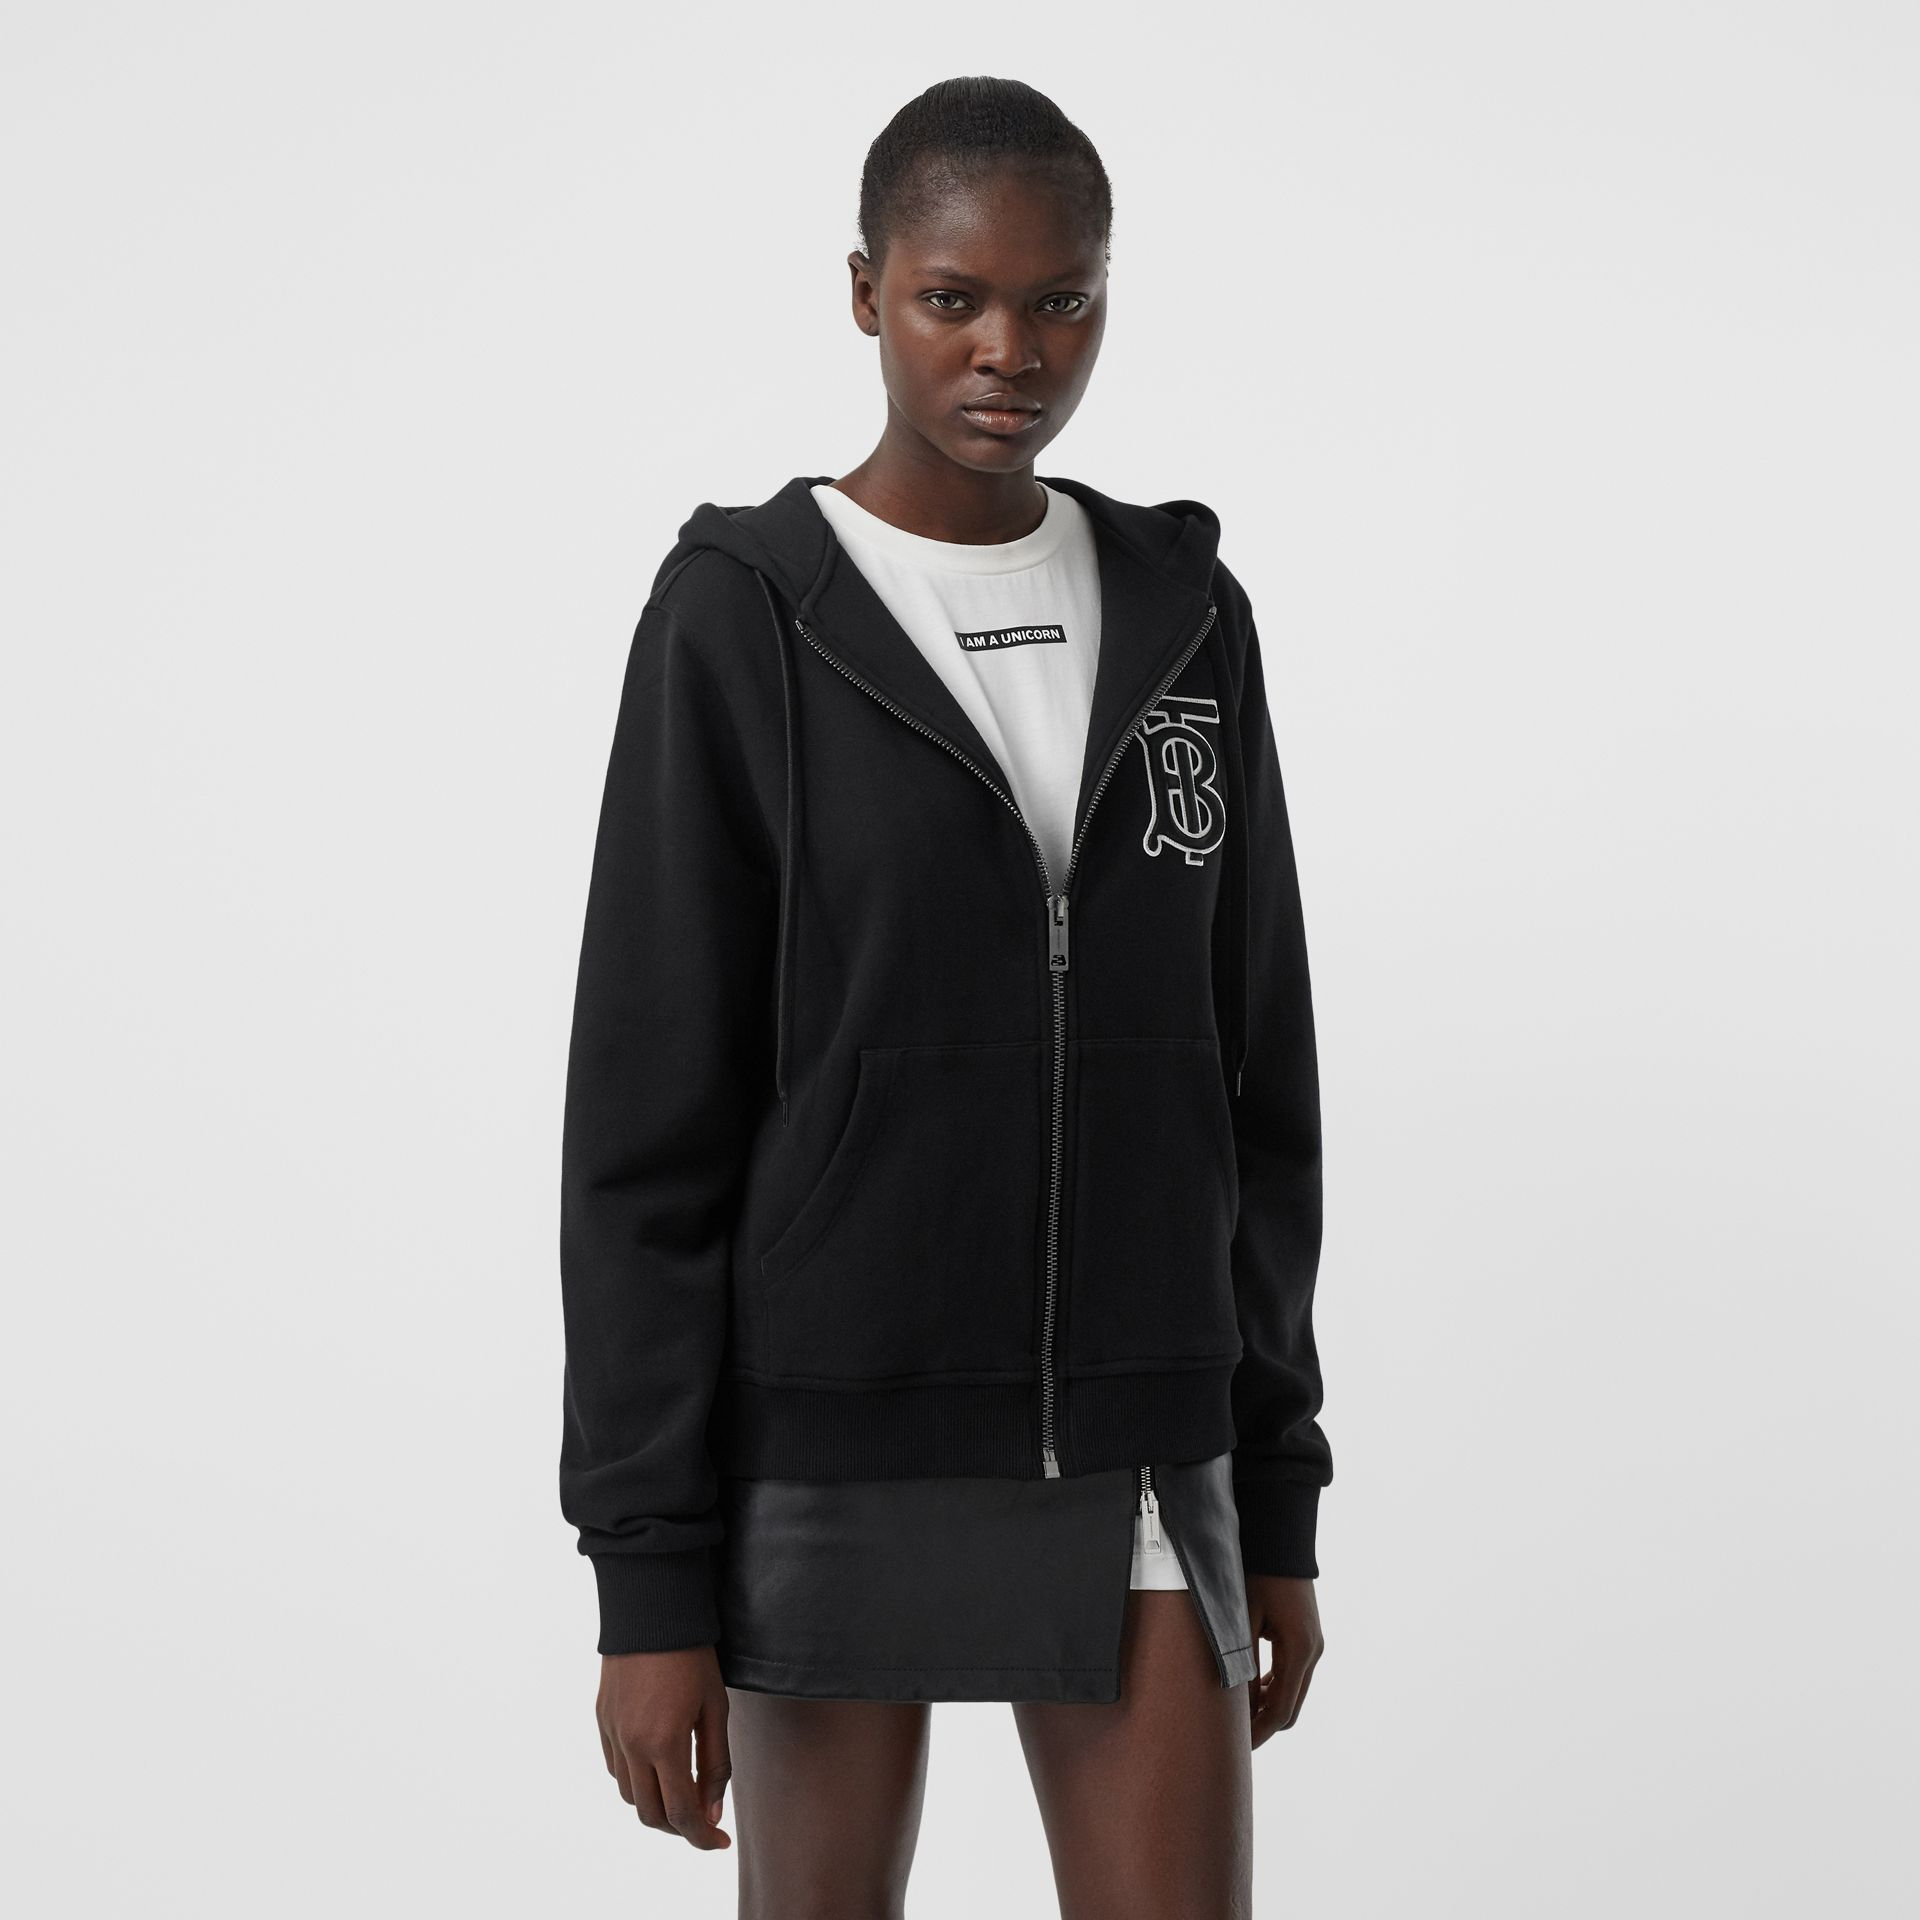 Monogram Motif Cotton Oversized Hooded Top in Black - Women | Burberry - gallery image 4